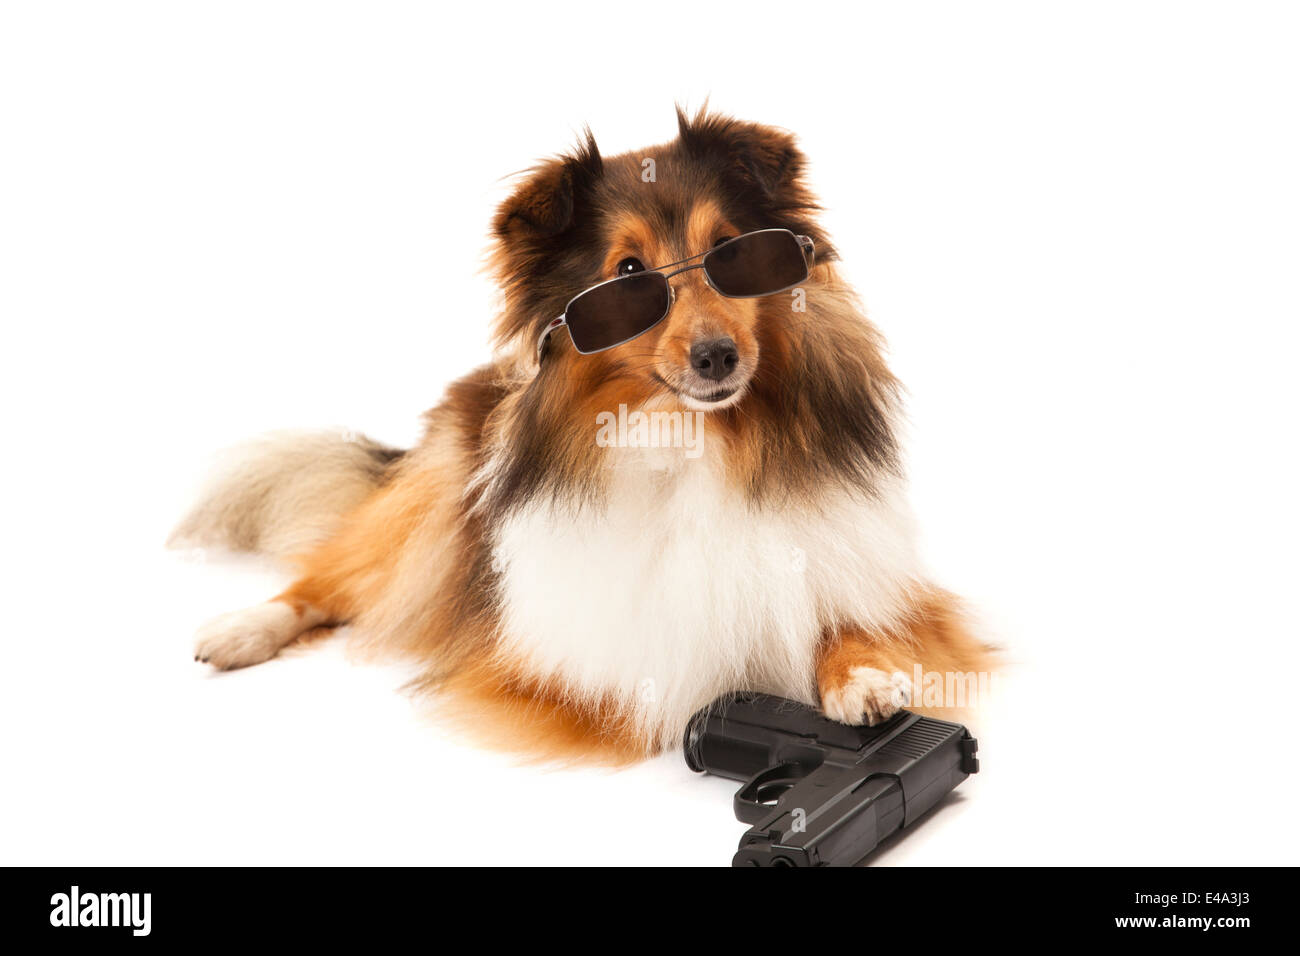 Close-up of hand in front of dog with sunglasses and gun over white background - Stock Image